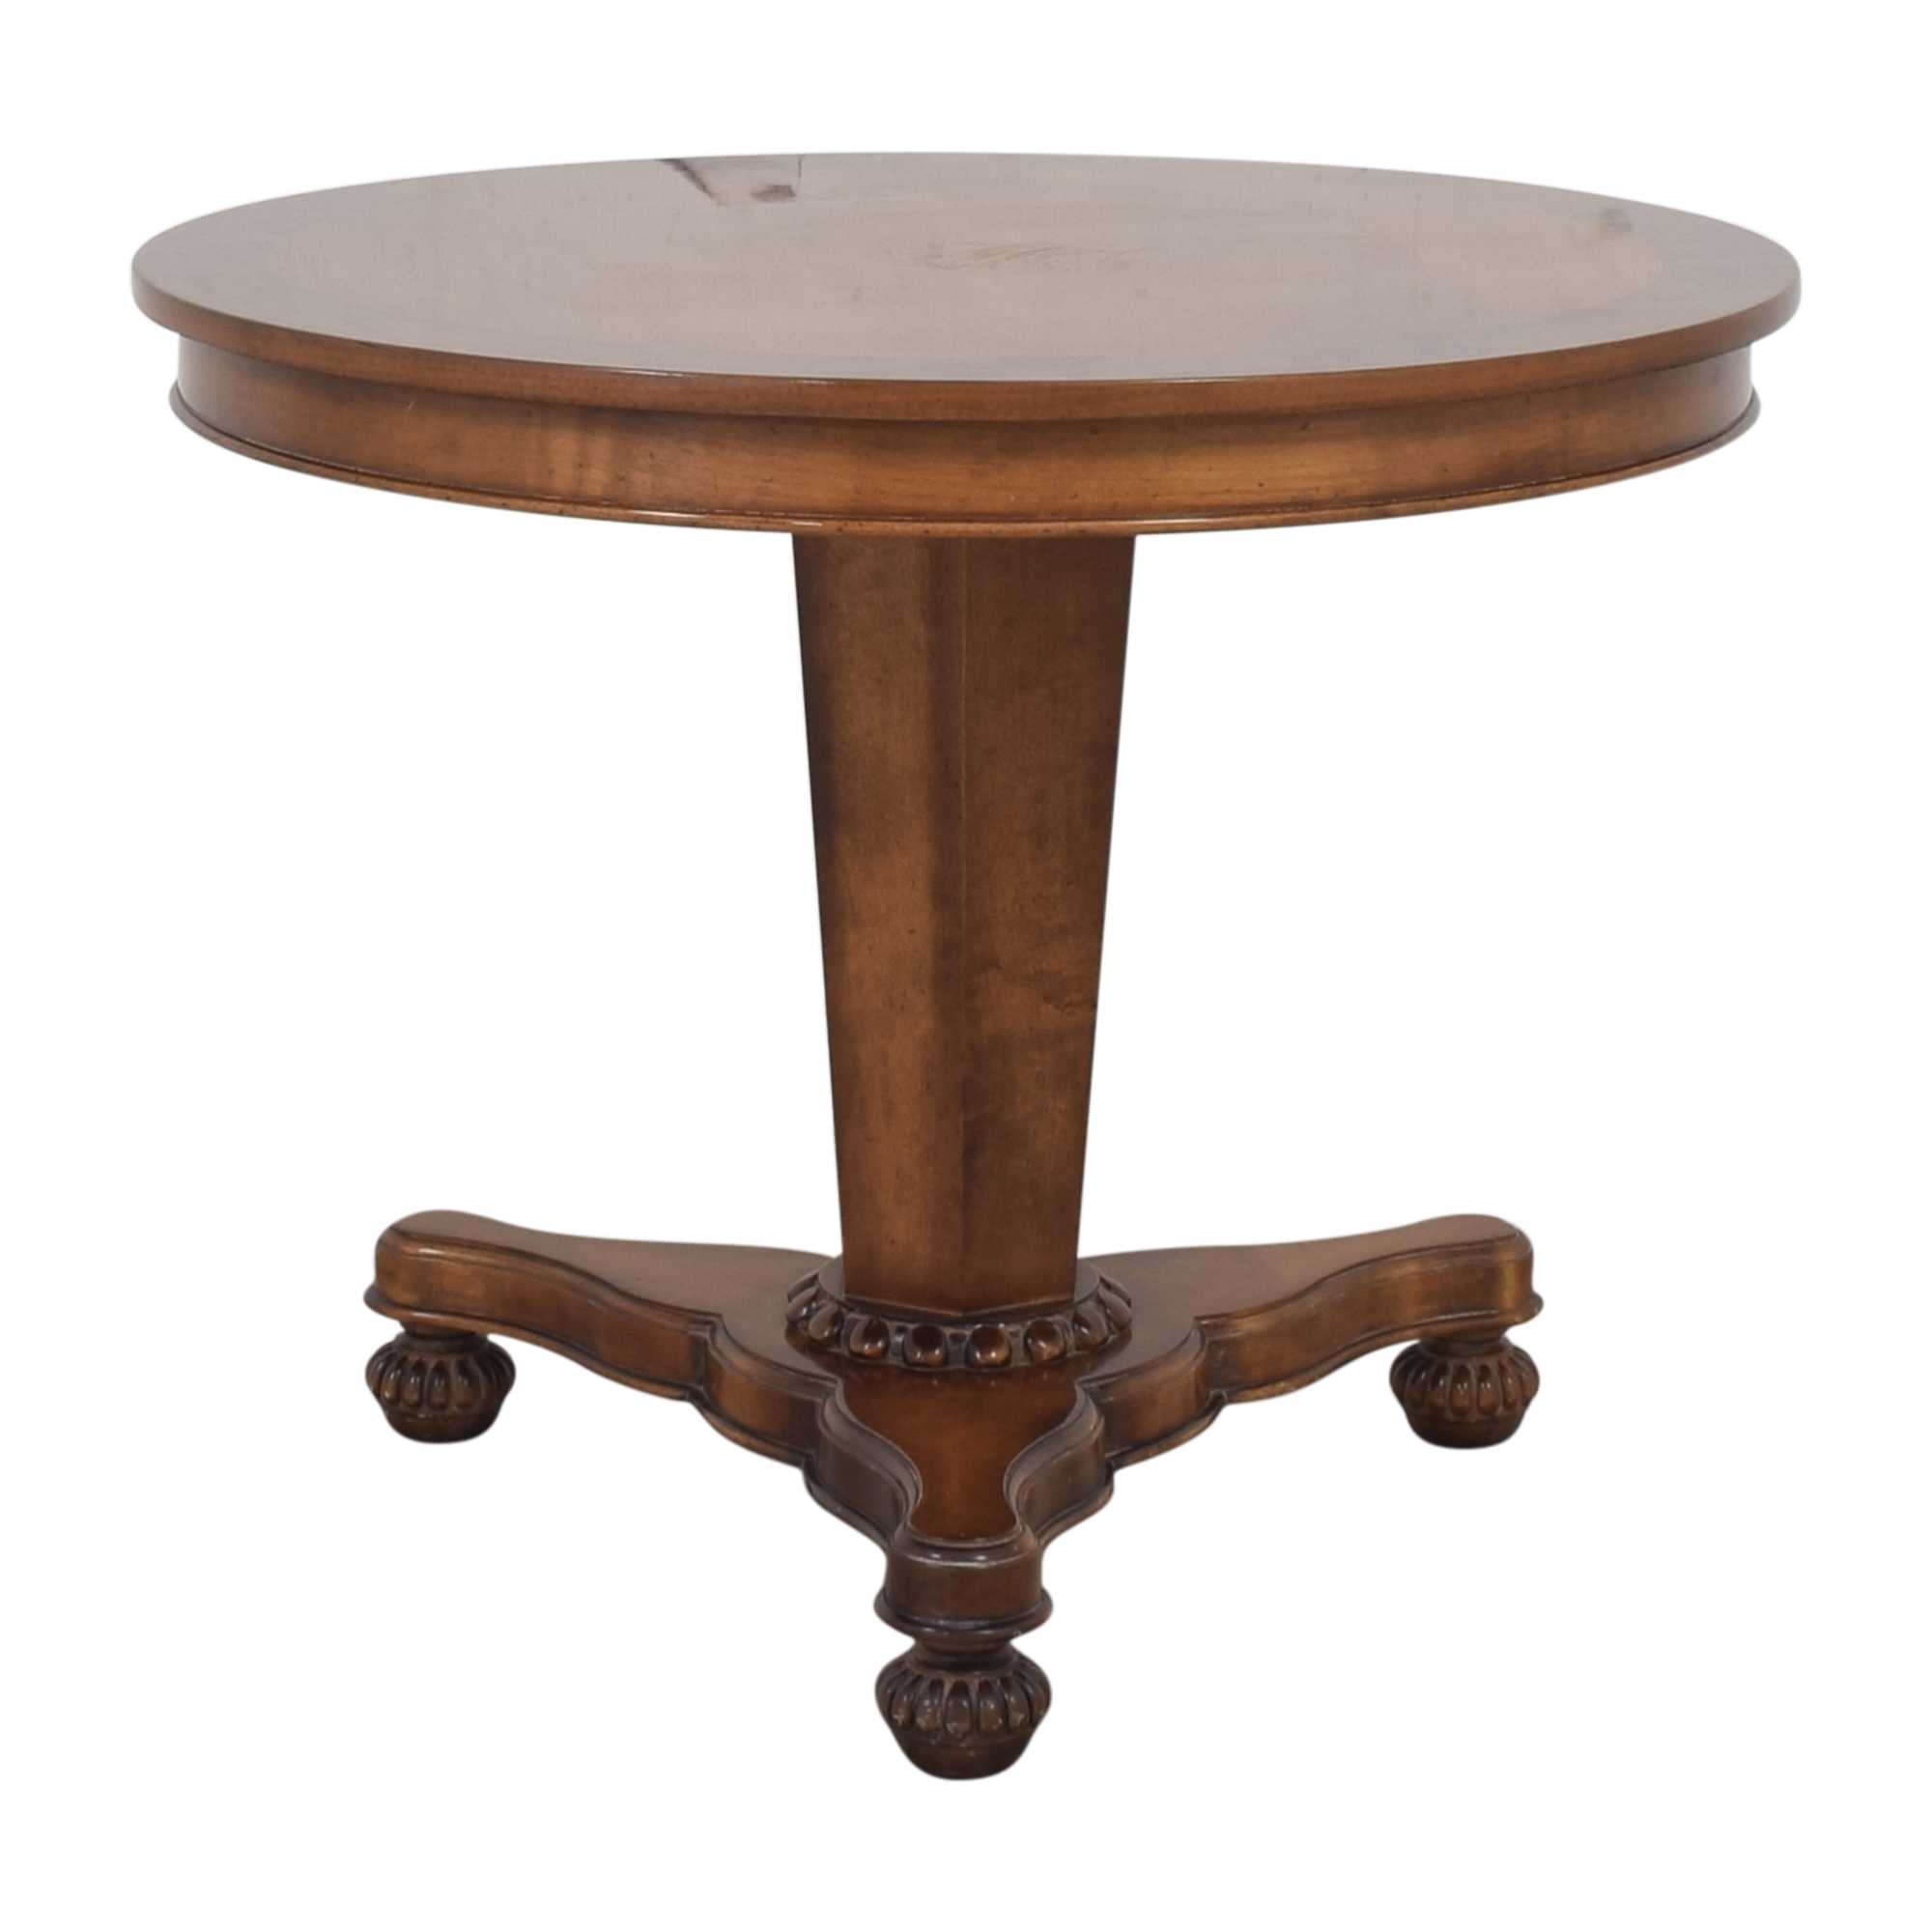 Baker Furniture Baker Furniture Milling Road Pedestal Table second hand